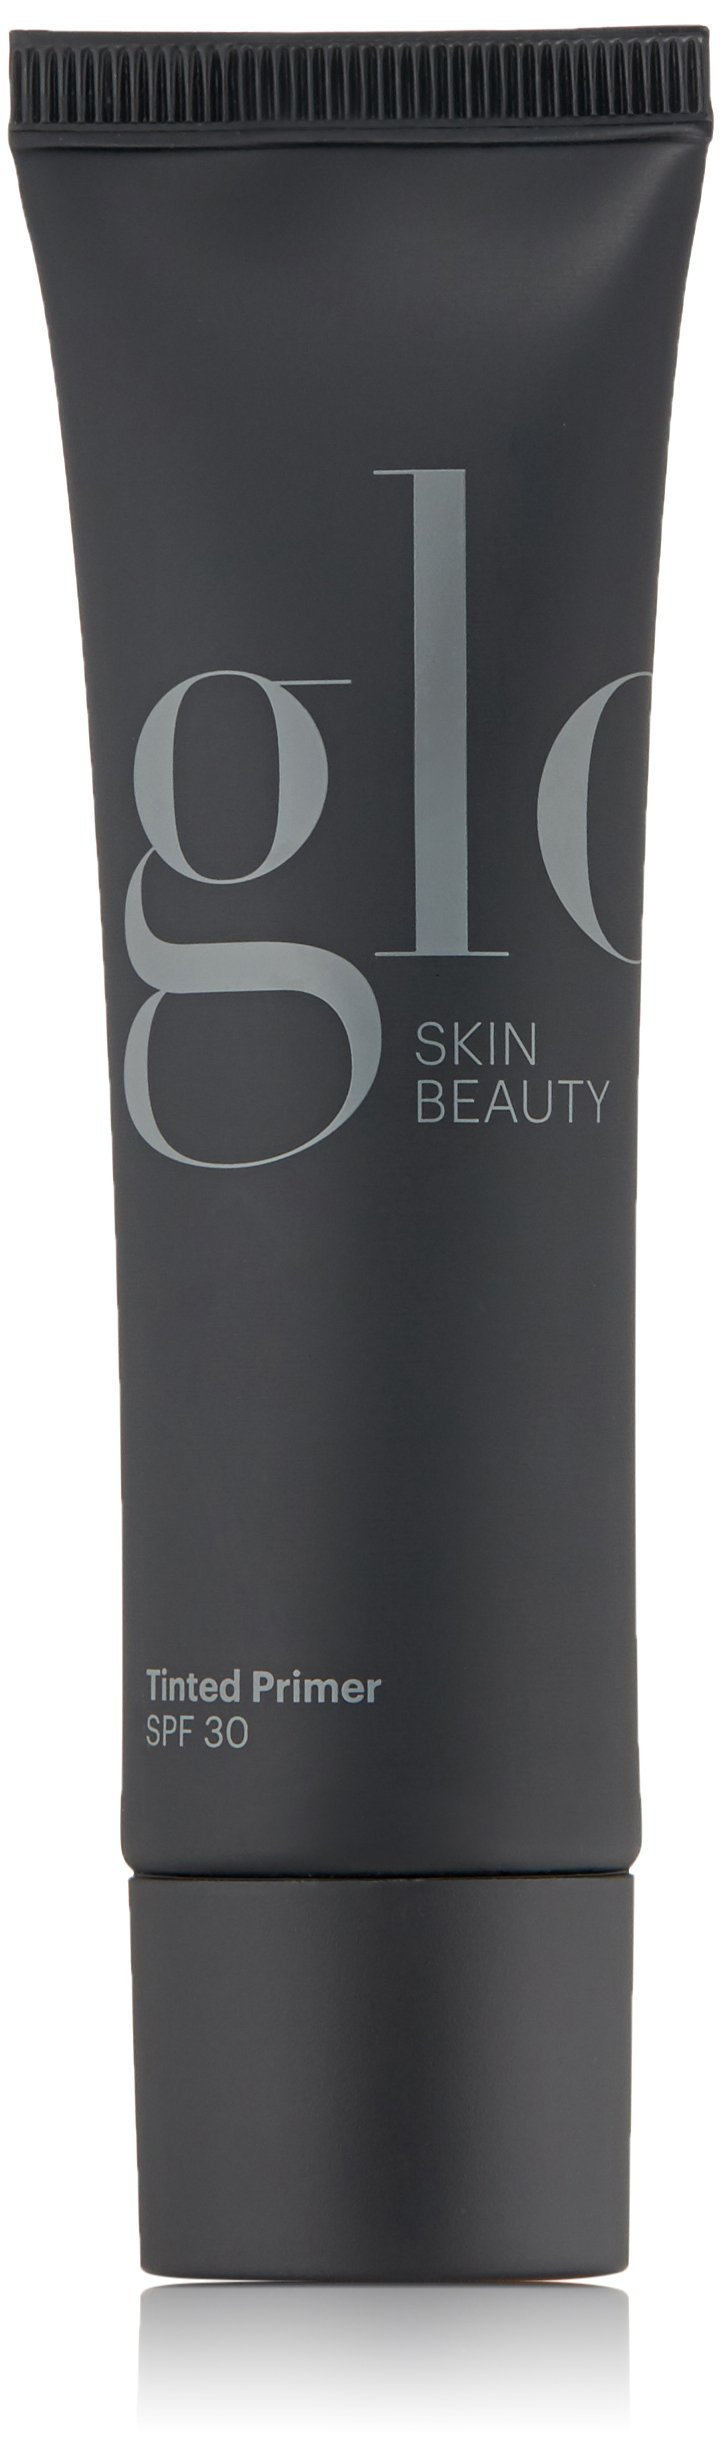 Glo Skin Beauty Tinted Primer SPF 30 in Light | Foundation Face Priming Tint with Sunscreen | 4 Shades, Satin Finish by Glo Skin Beauty